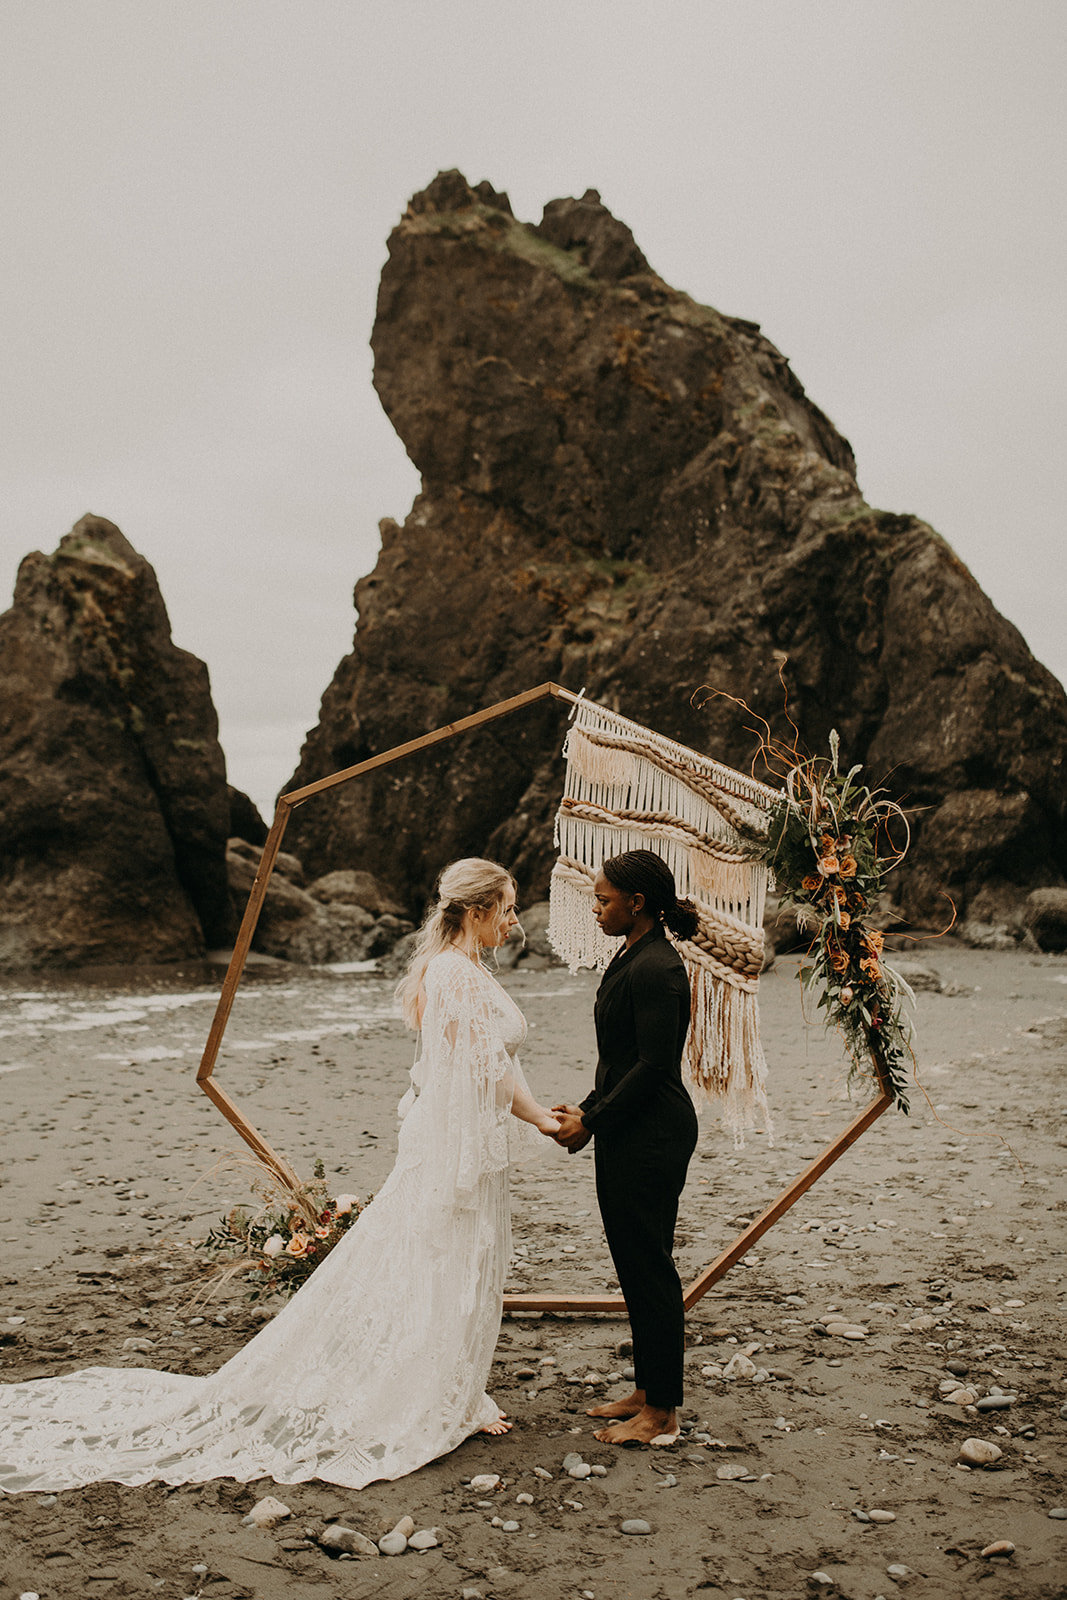 Ruby_Beach_Styled_Elopement_-_Run_Away_with_Me_Elopement_Collective_-_Kamra_Fuller_Photography_-_Ceremony-1